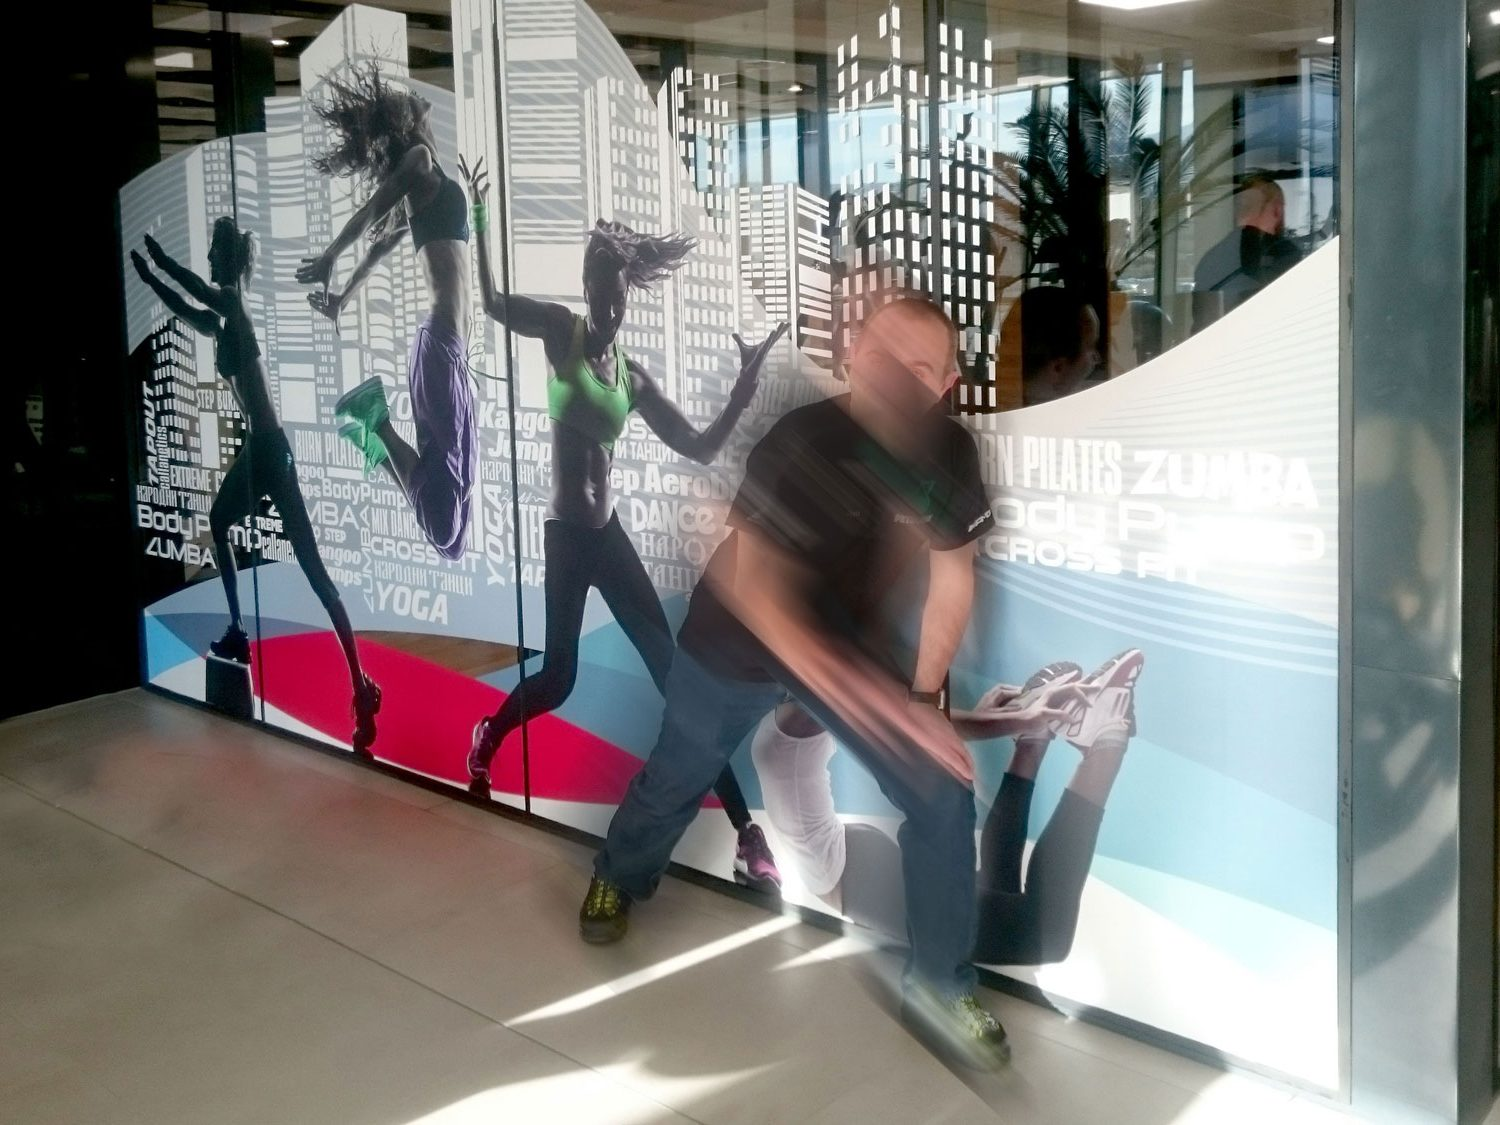 Colorful image of dancing people on a glass wall